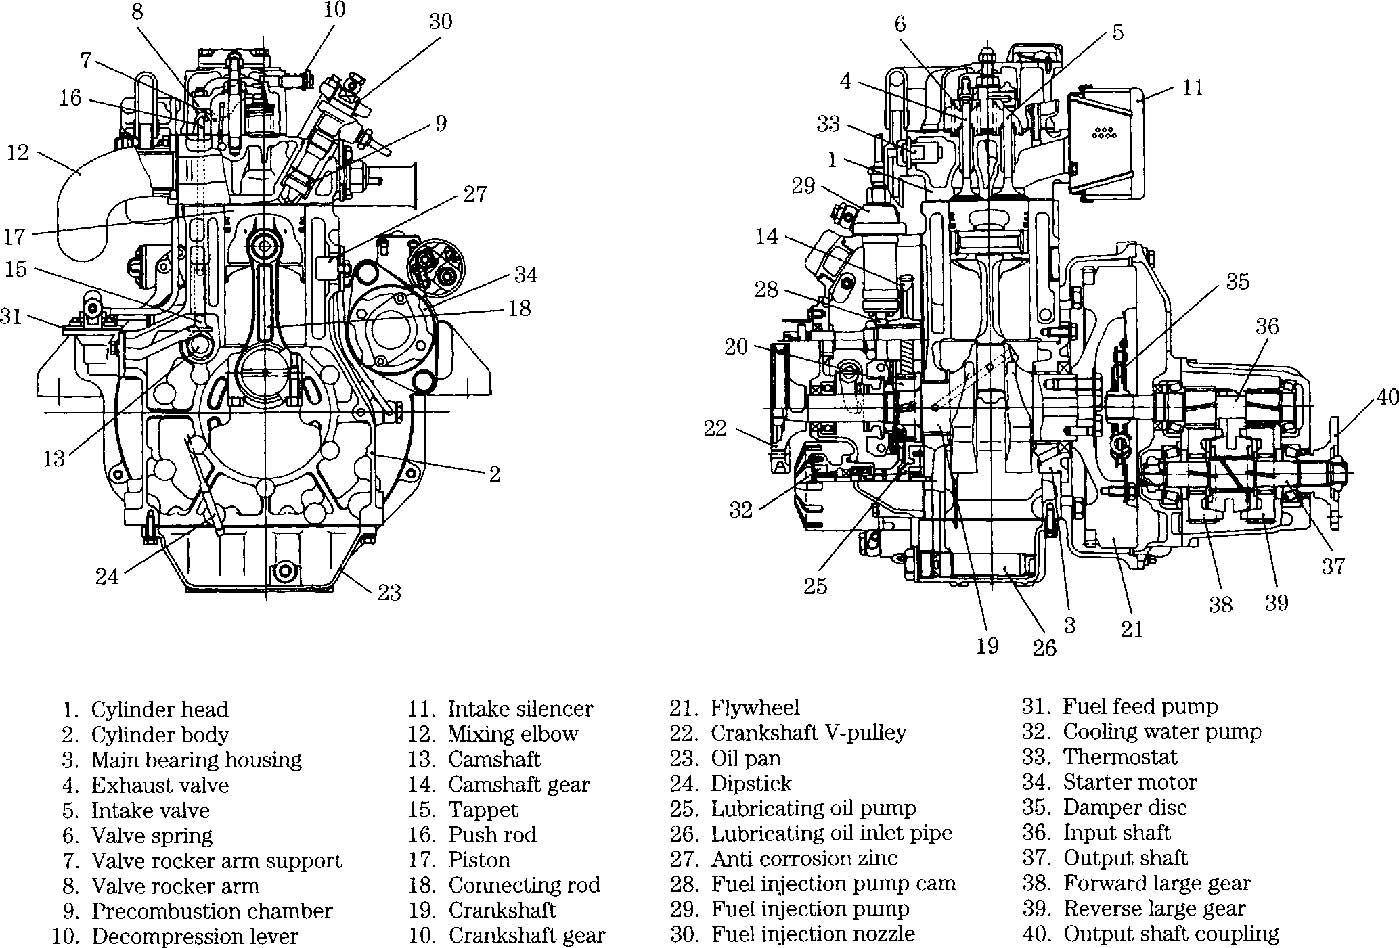 Boat Engine Wiring Diagram - on marine engine, marine drawings, marine wiring color code chart, marine electrical diagrams, marine hvac diagrams, speaker diagrams, trailer diagrams, marine exhaust diagrams, marine plumbing diagrams, marine transmission diagrams, big architects diagrams, solar power diagrams,